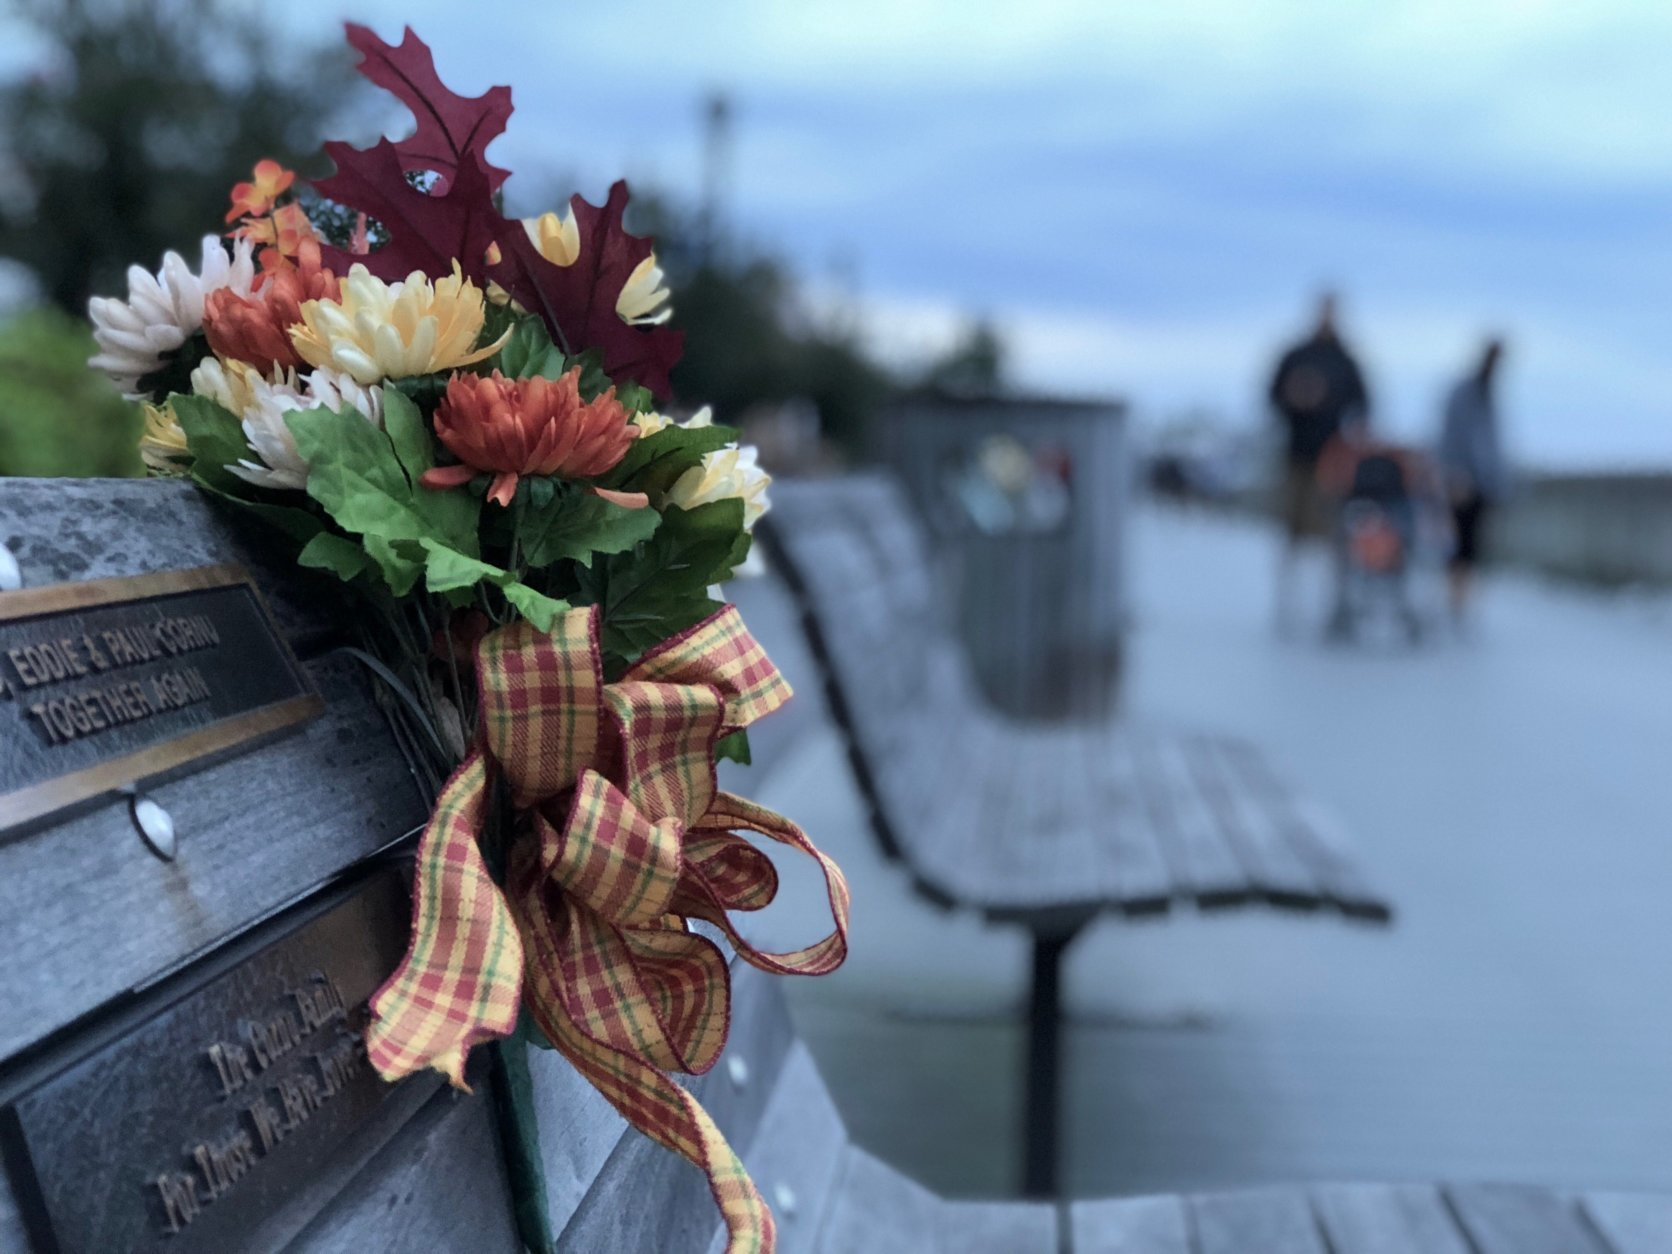 Reporter Kate Ryan caught up with voters along the Chesapeake Beach boardwalk in Calvert County. She asked them what issues are most important to them this election (WTOP/Kate Ryan).